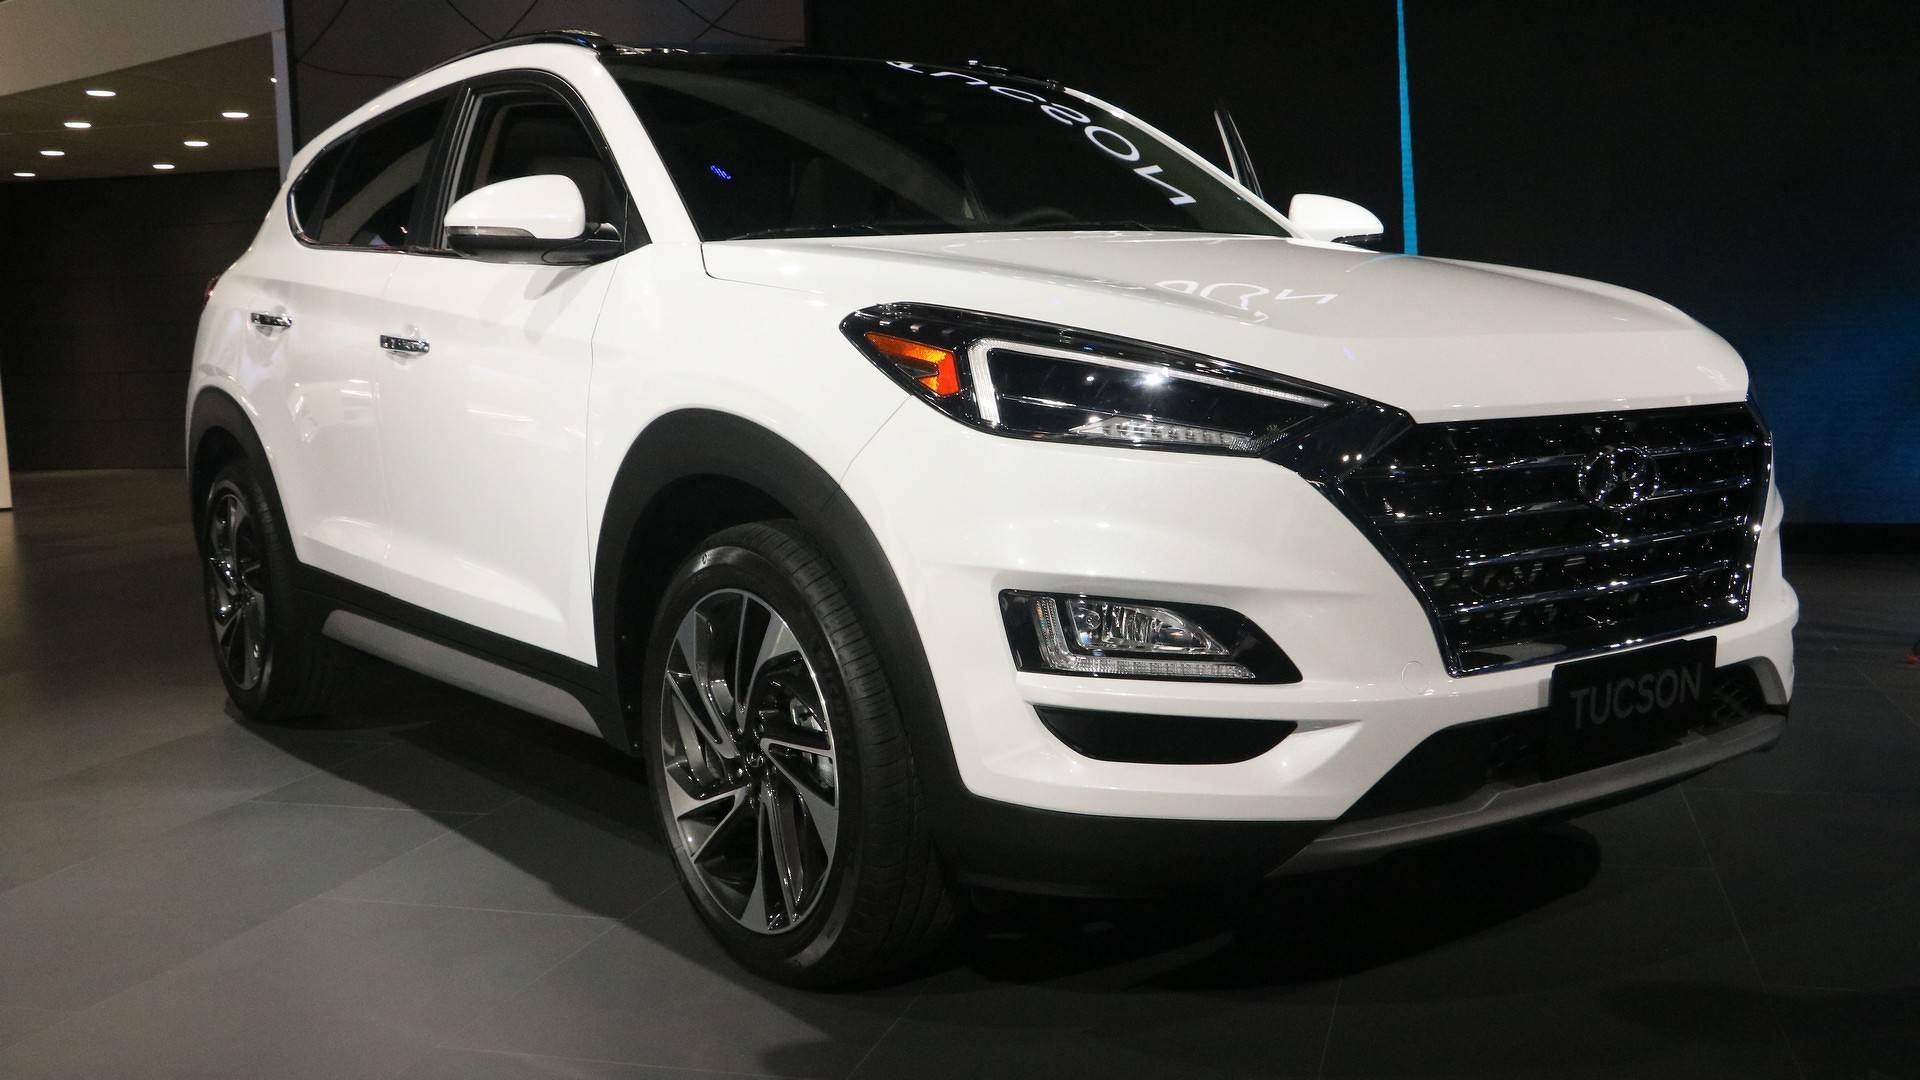 Hyundai Tucson Arrives With Major Styling Updates New Tech - Car show tucson today